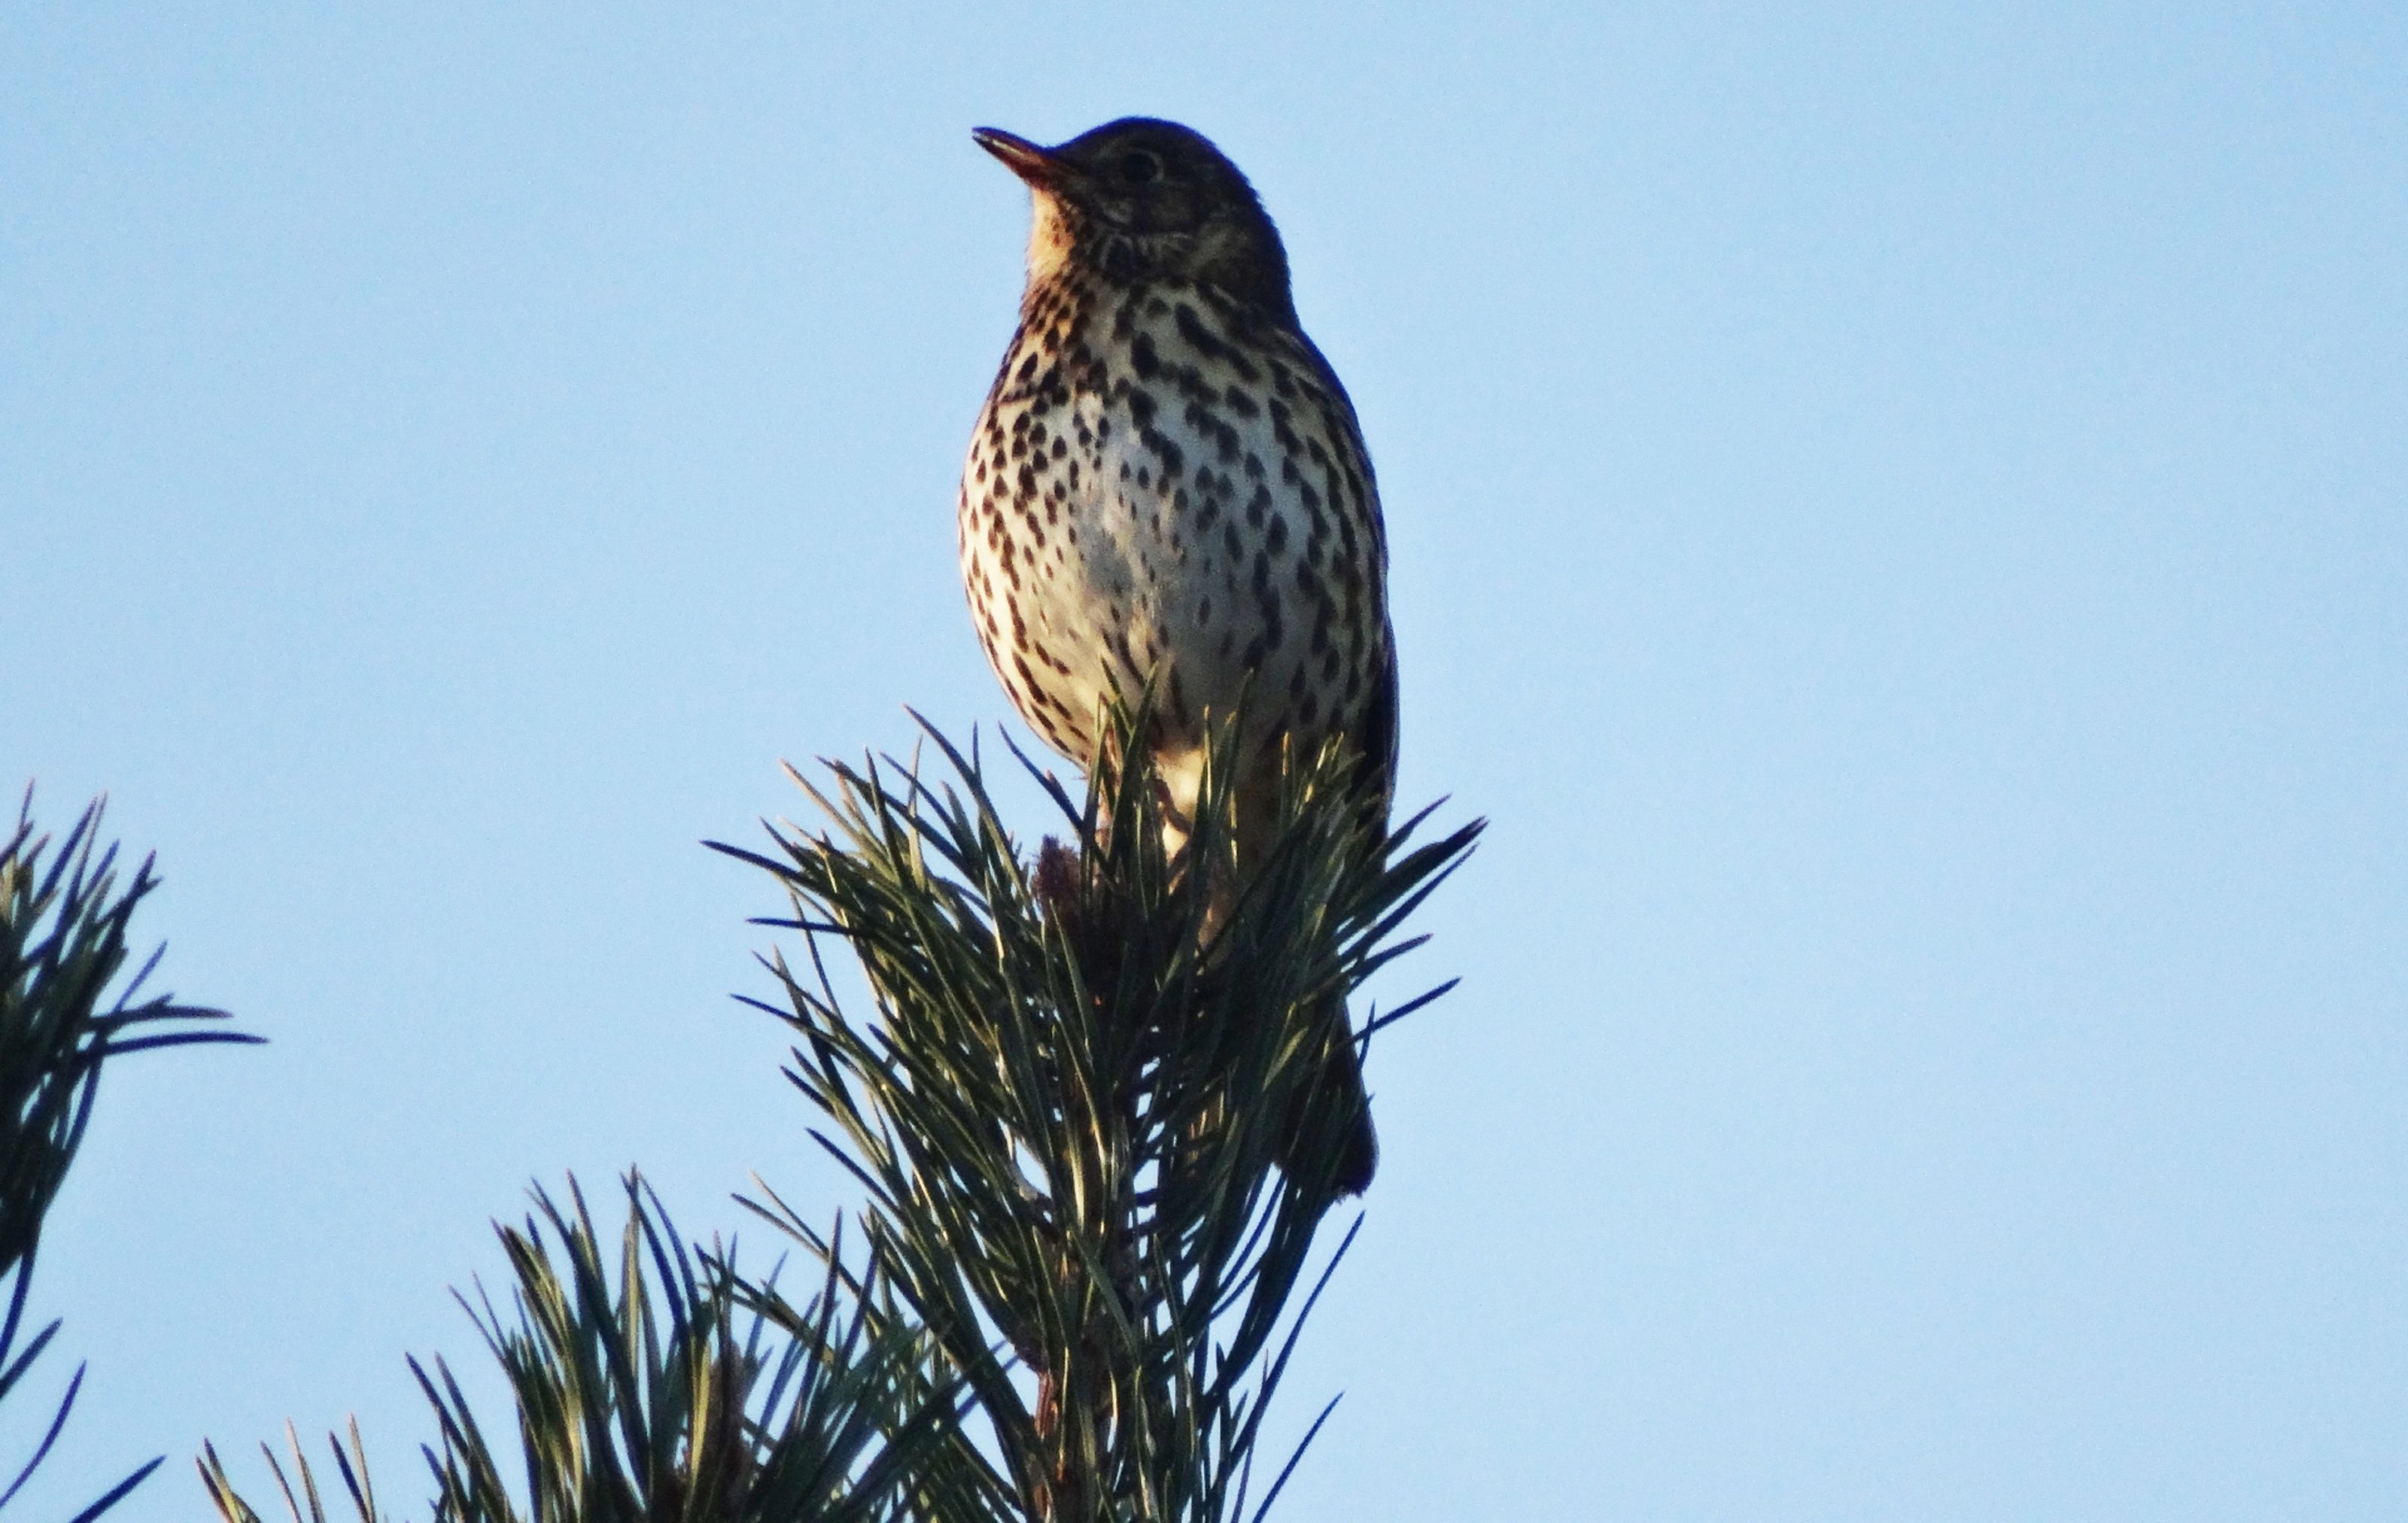 A mistle thrush takes in the view from high branches.